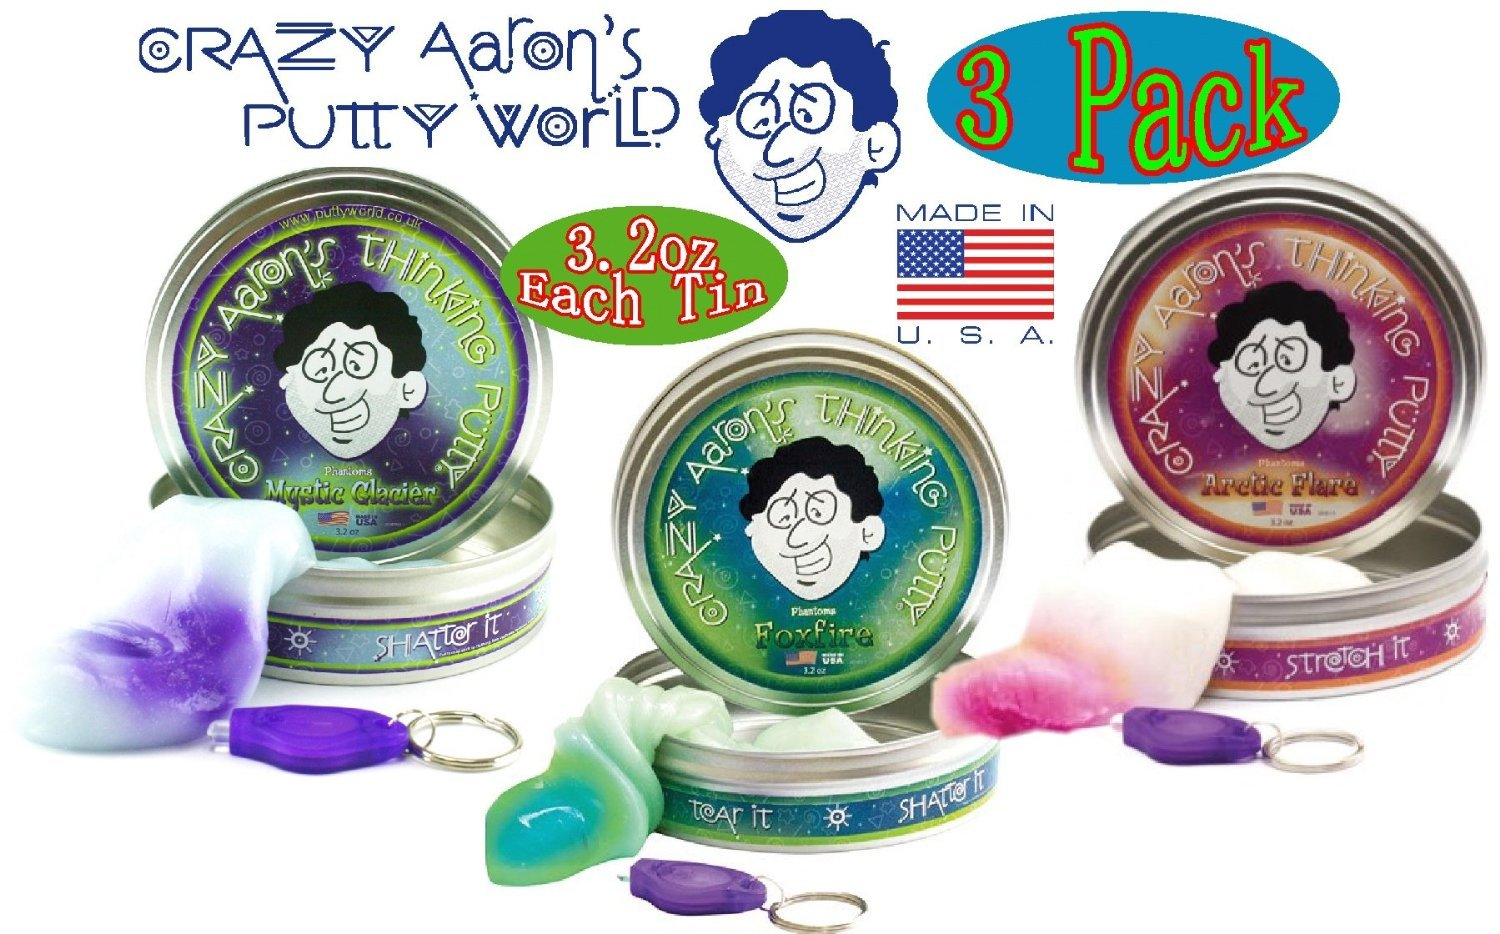 Crazy Aaron's Thinking Putty Phantoms (UV Reactive) Mystic Glacier, Foxfire & Arctic Flare with Blacklight Keychains Gift Set Bundle - 3 Pack by Crazy Aaron's (Image #1)